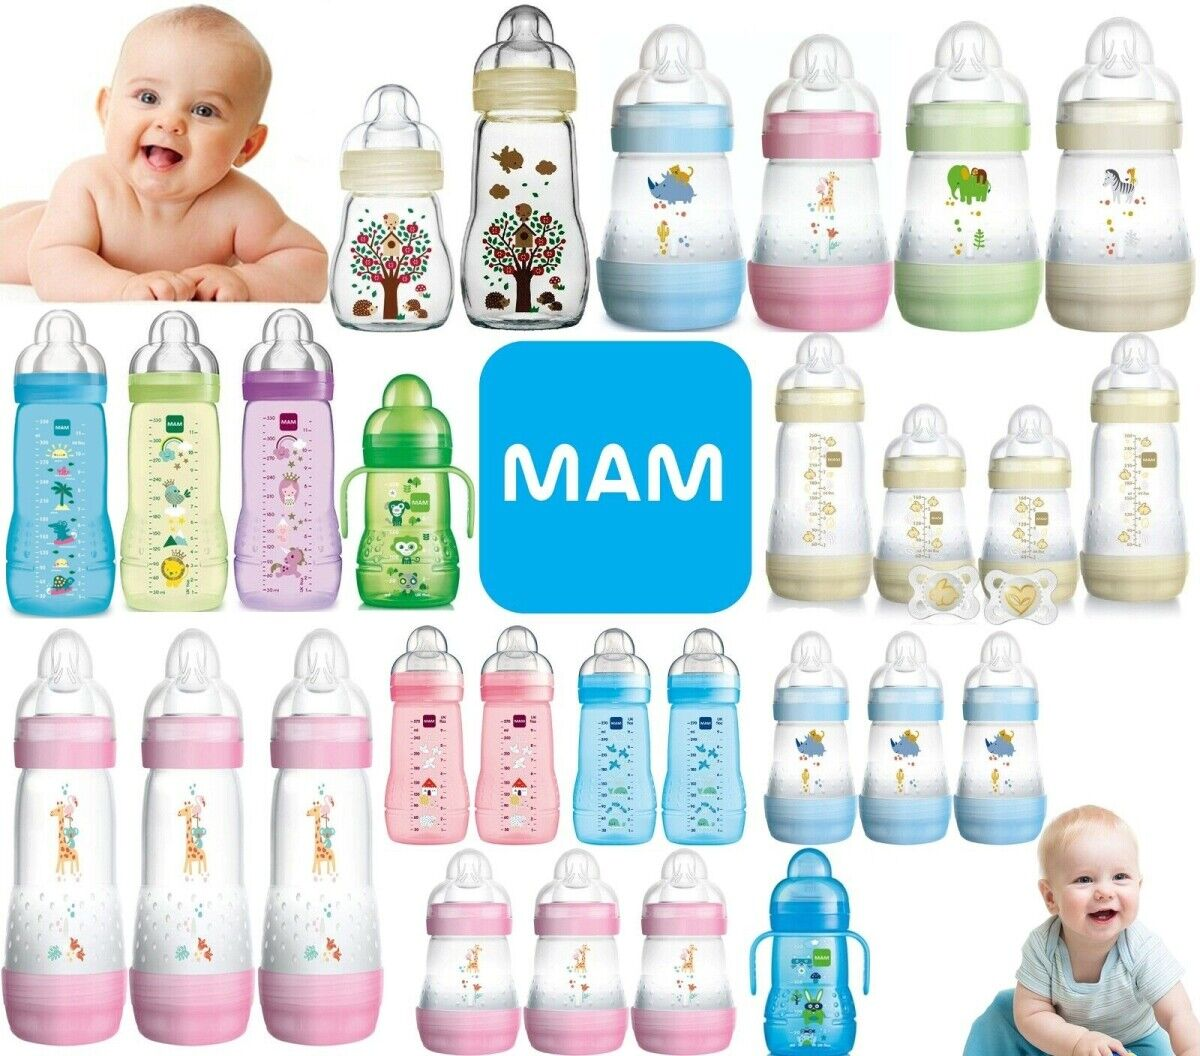 Mam Easy Start Anti-Colic Bottle 160ml 1pk Blue//Green//Pink//White